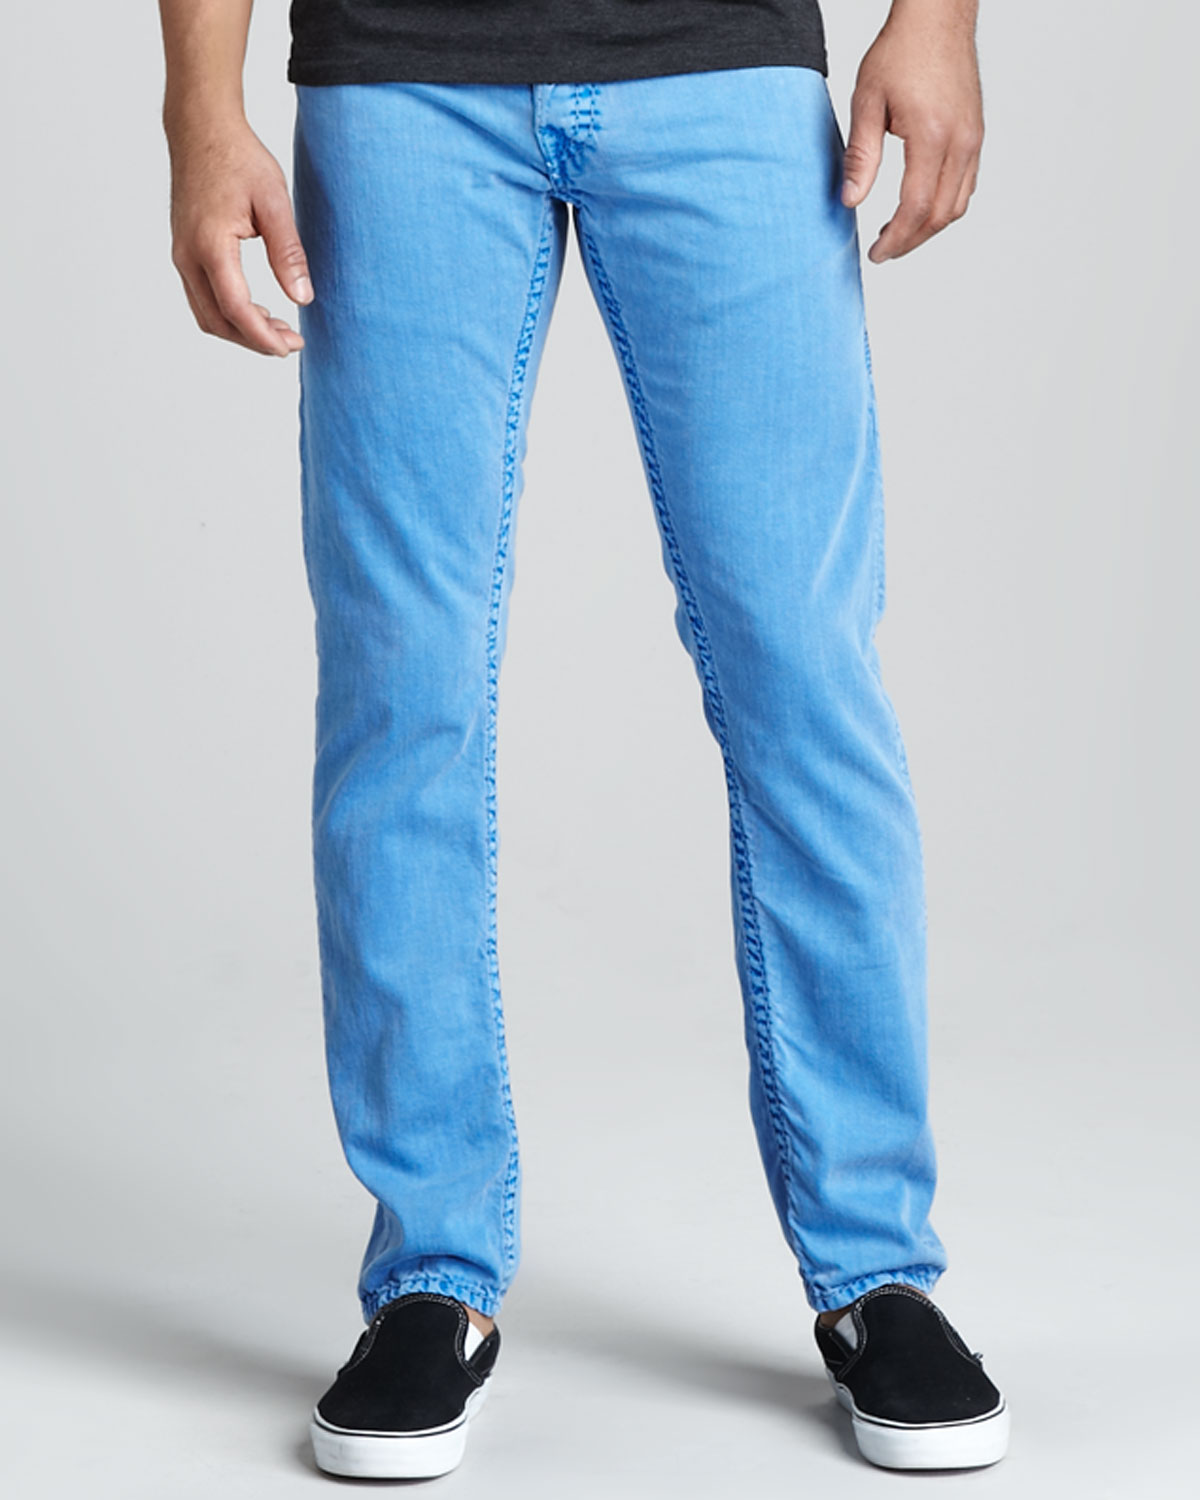 Lyst - True Religion Jack Overdyed PX Royal Blue Jeans In Blue For Men